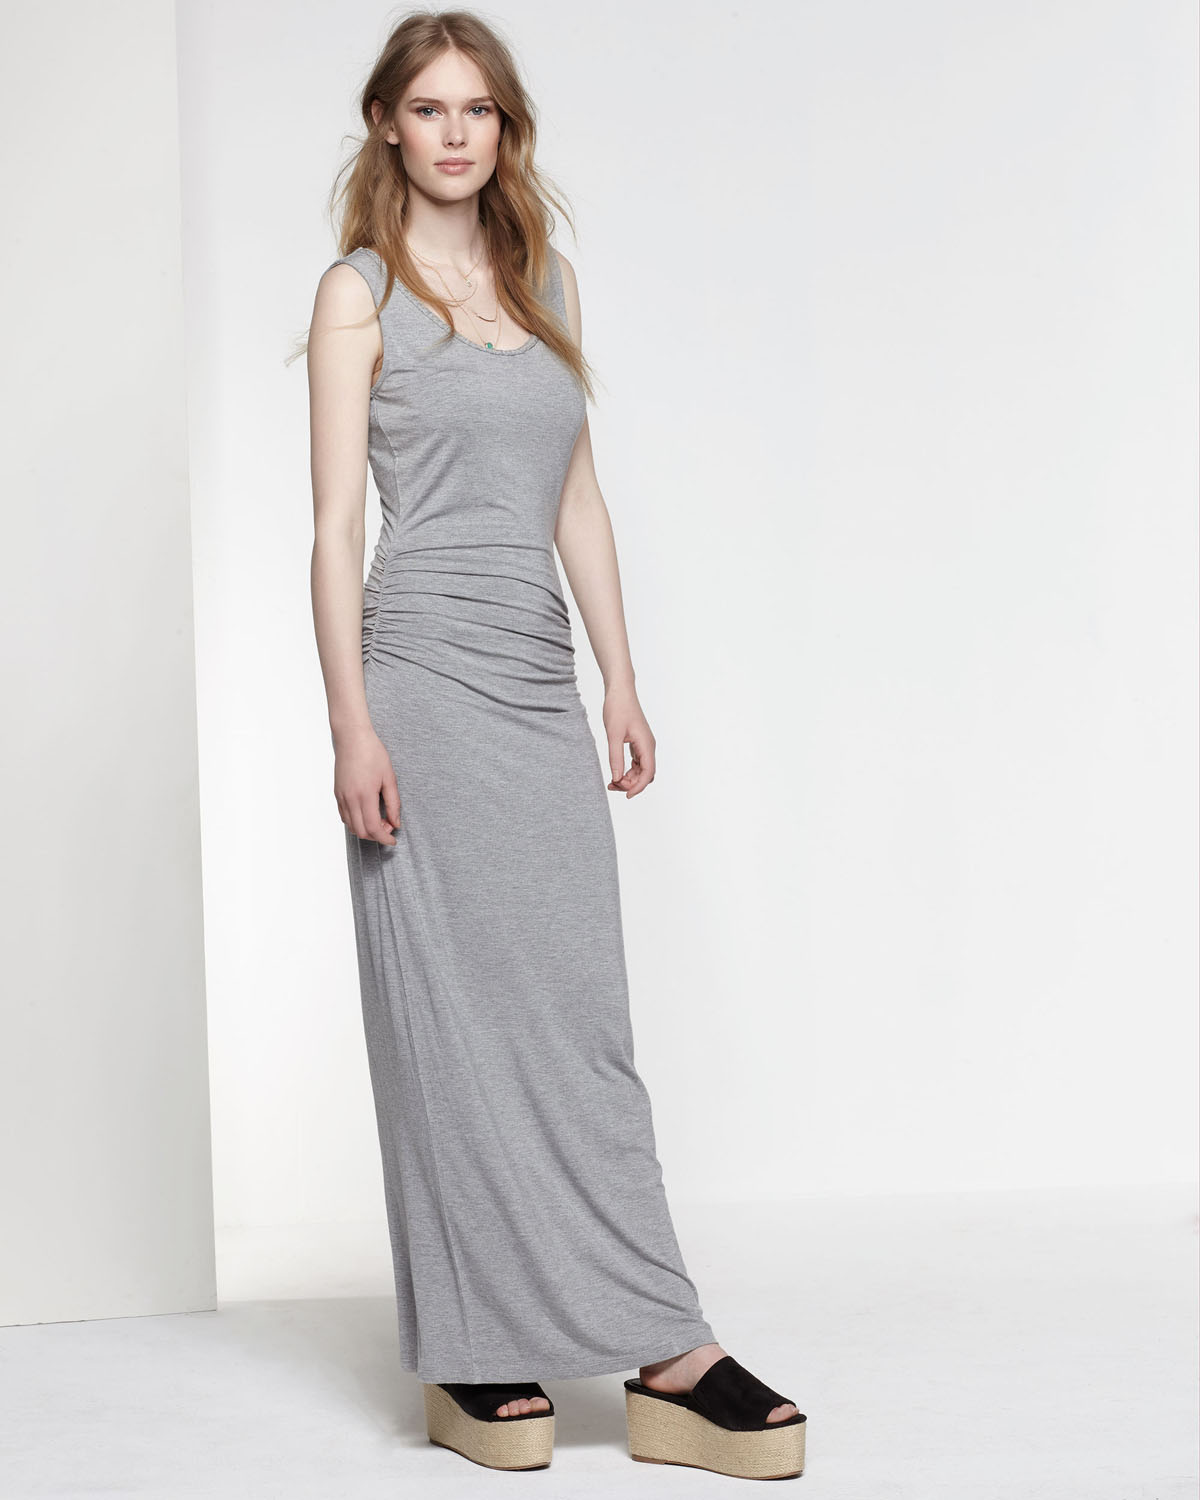 Maxi Jurk Grijs.Dames Braided Maxi Jurk 78786967 We Fashion